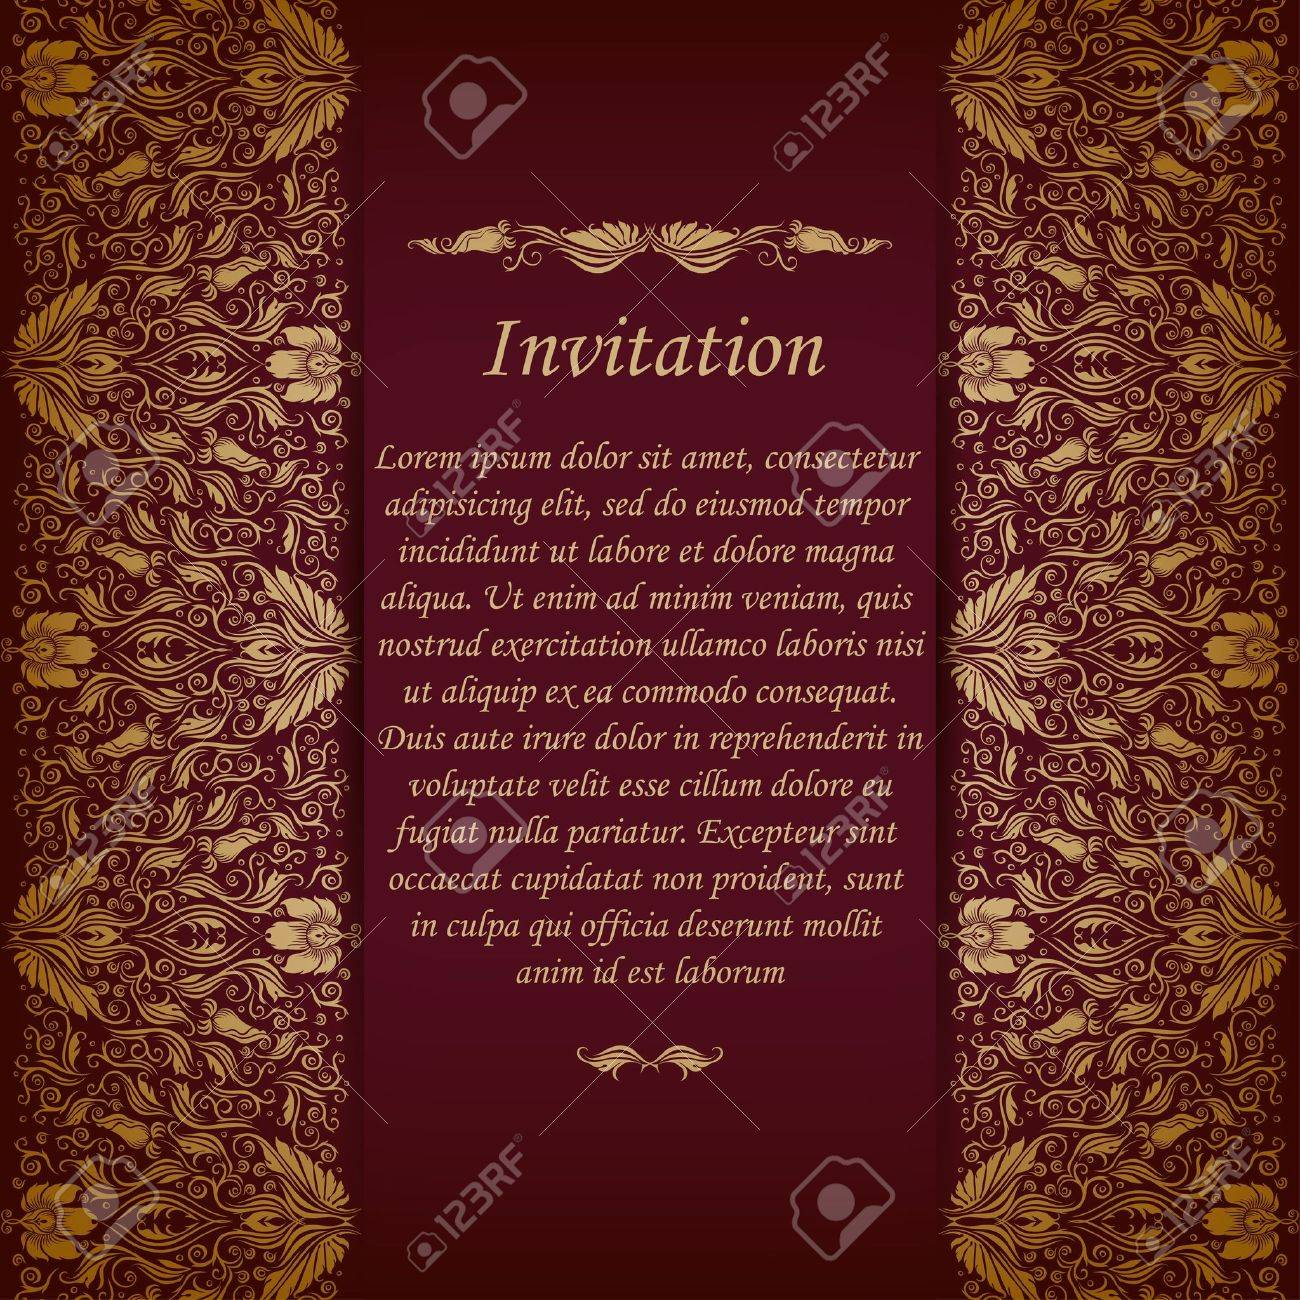 Elegant ornate background with lace seamless ornament for invitations, greeting card, menu  Floral elements, place for text Stock Vector - 21382871